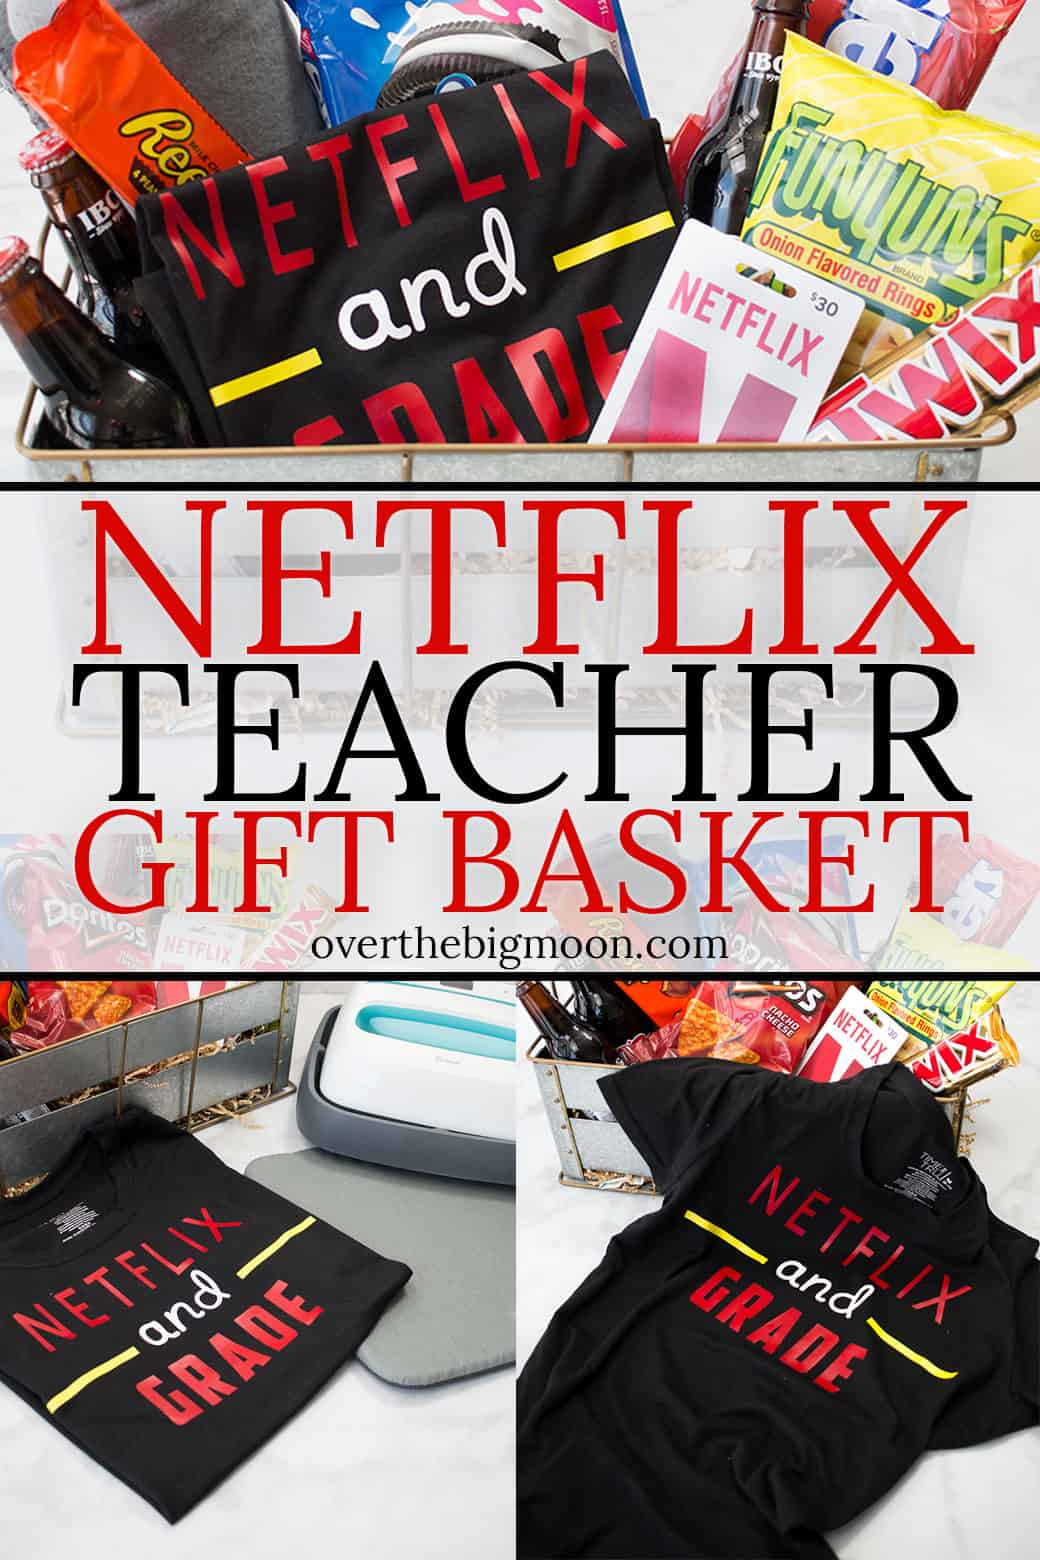 A fun Netflix Teacher Gift Basket -- filled with a custom Netflix and Grade T-Shirt and other fun goodies! Come check out all the fun ideas at overthebigmoon.com!